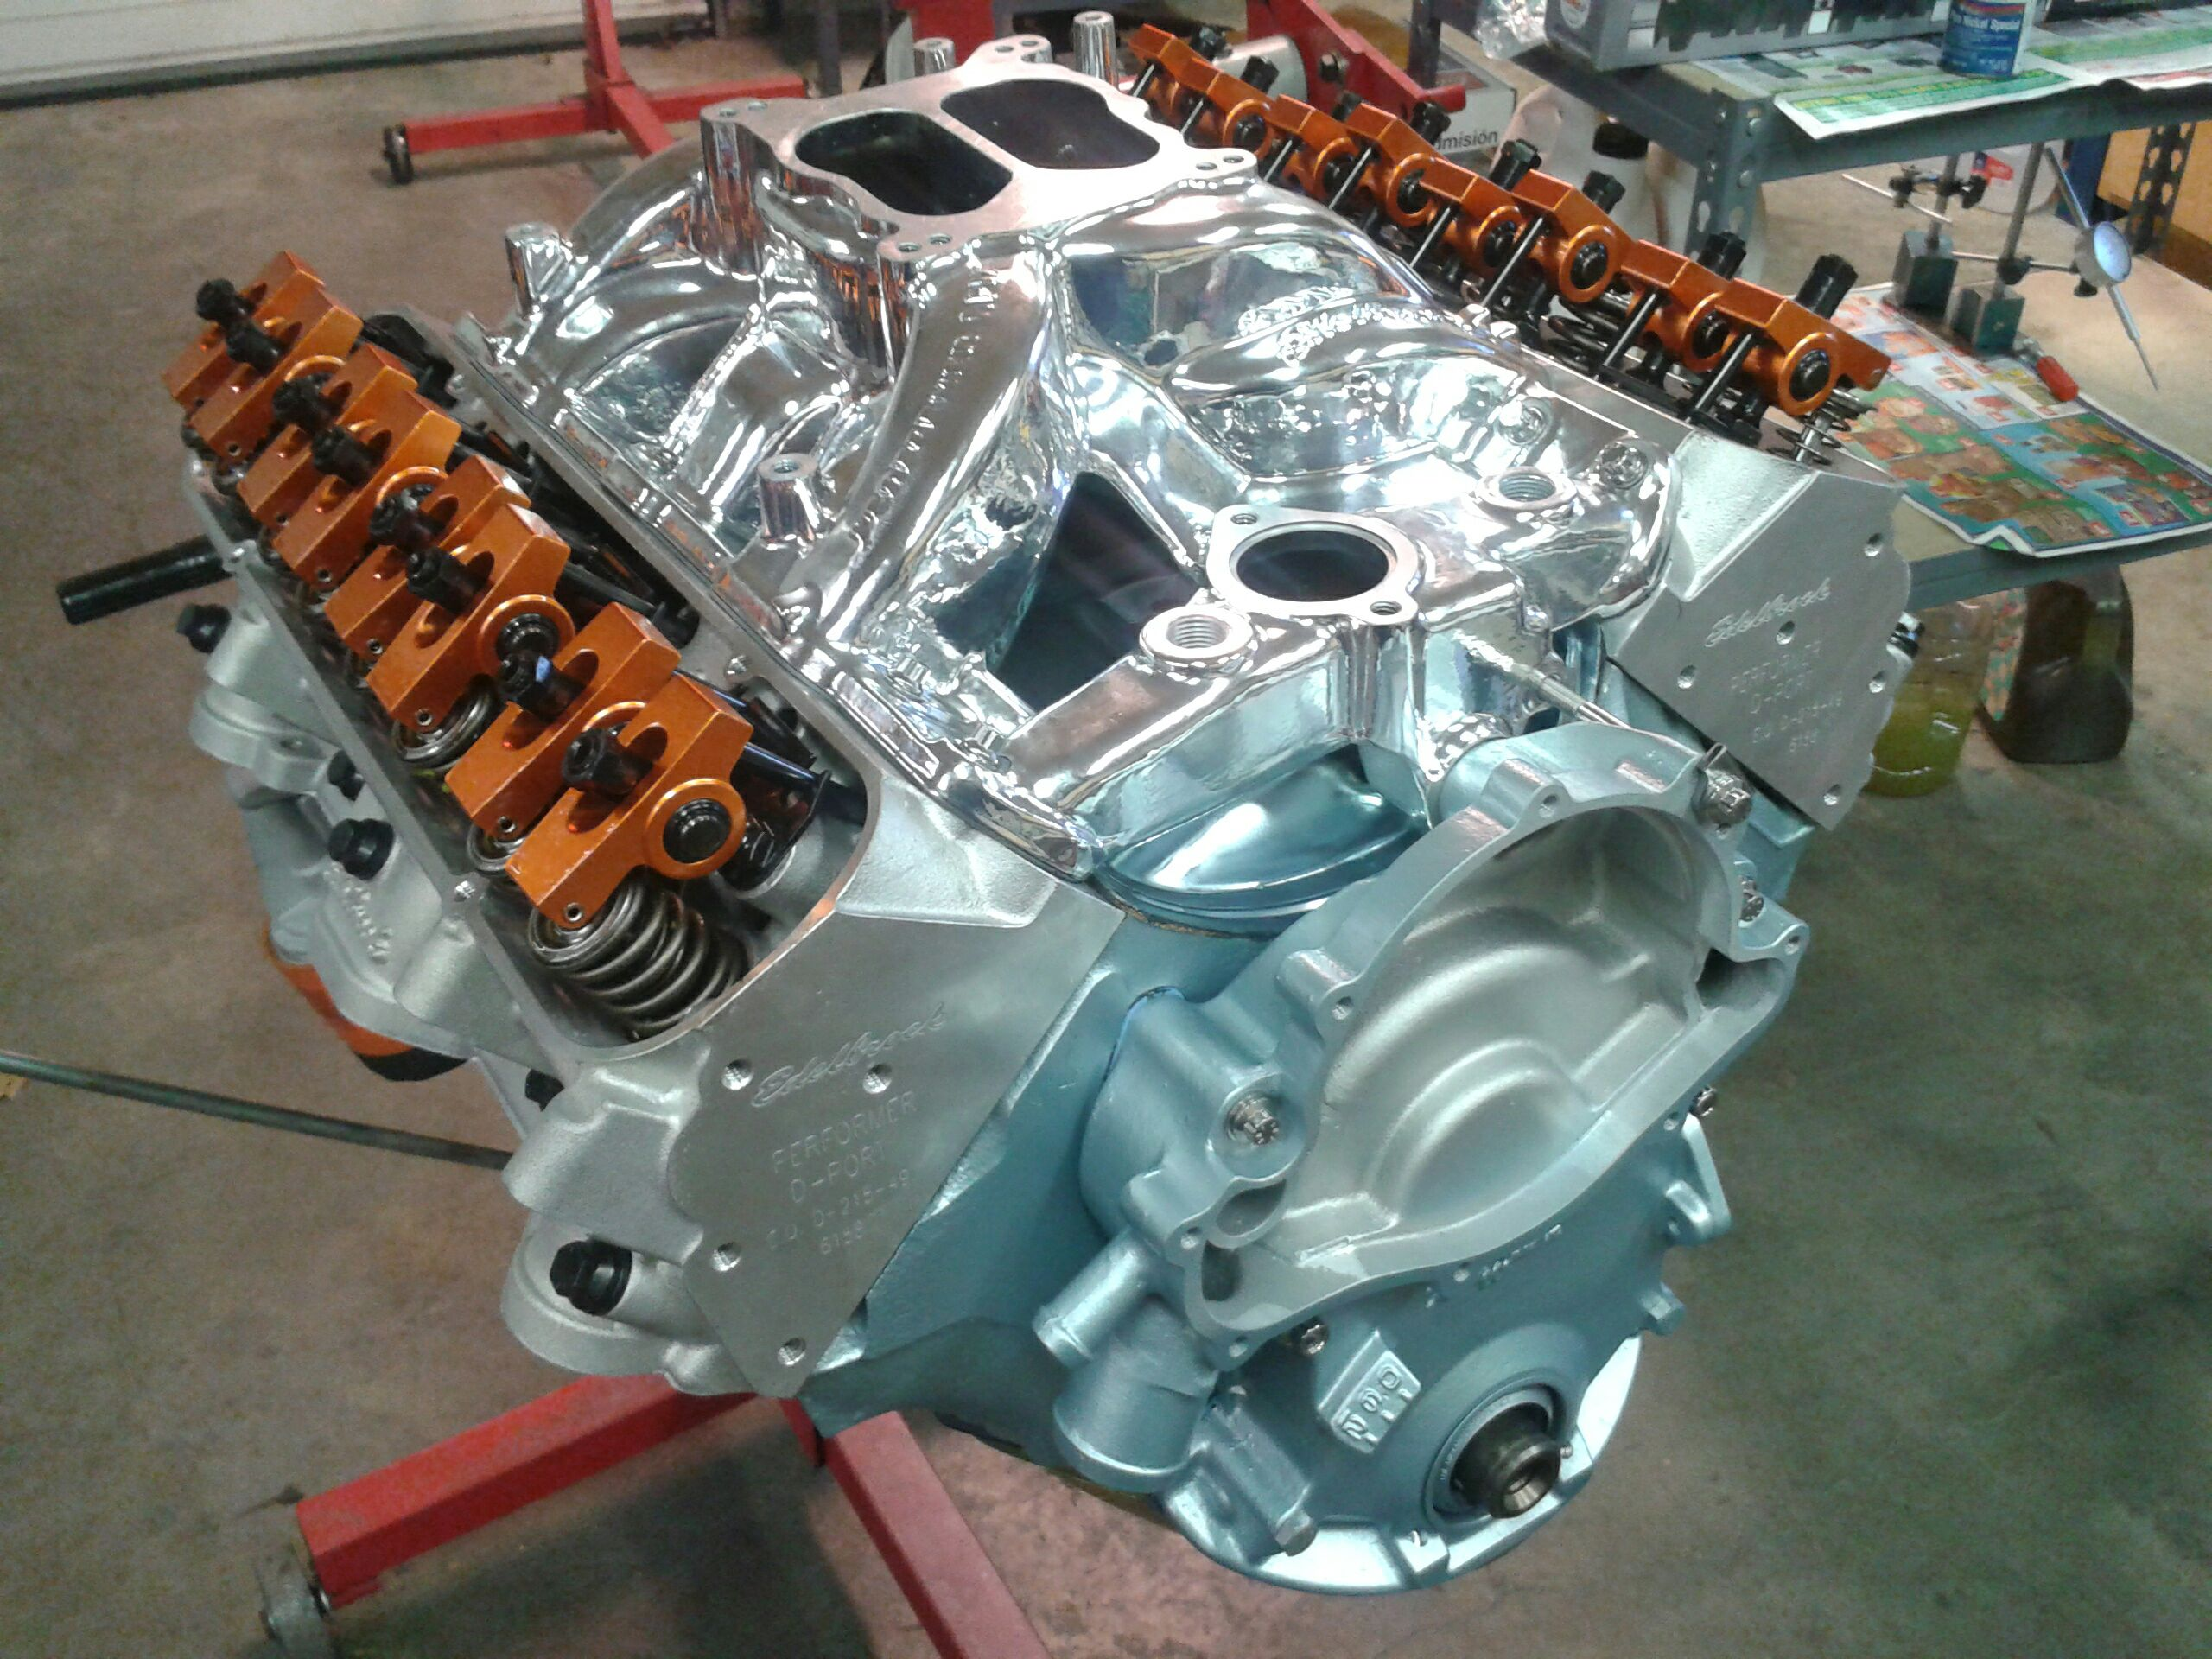 Is the Pontiac V8 just a low rpm torque monster?